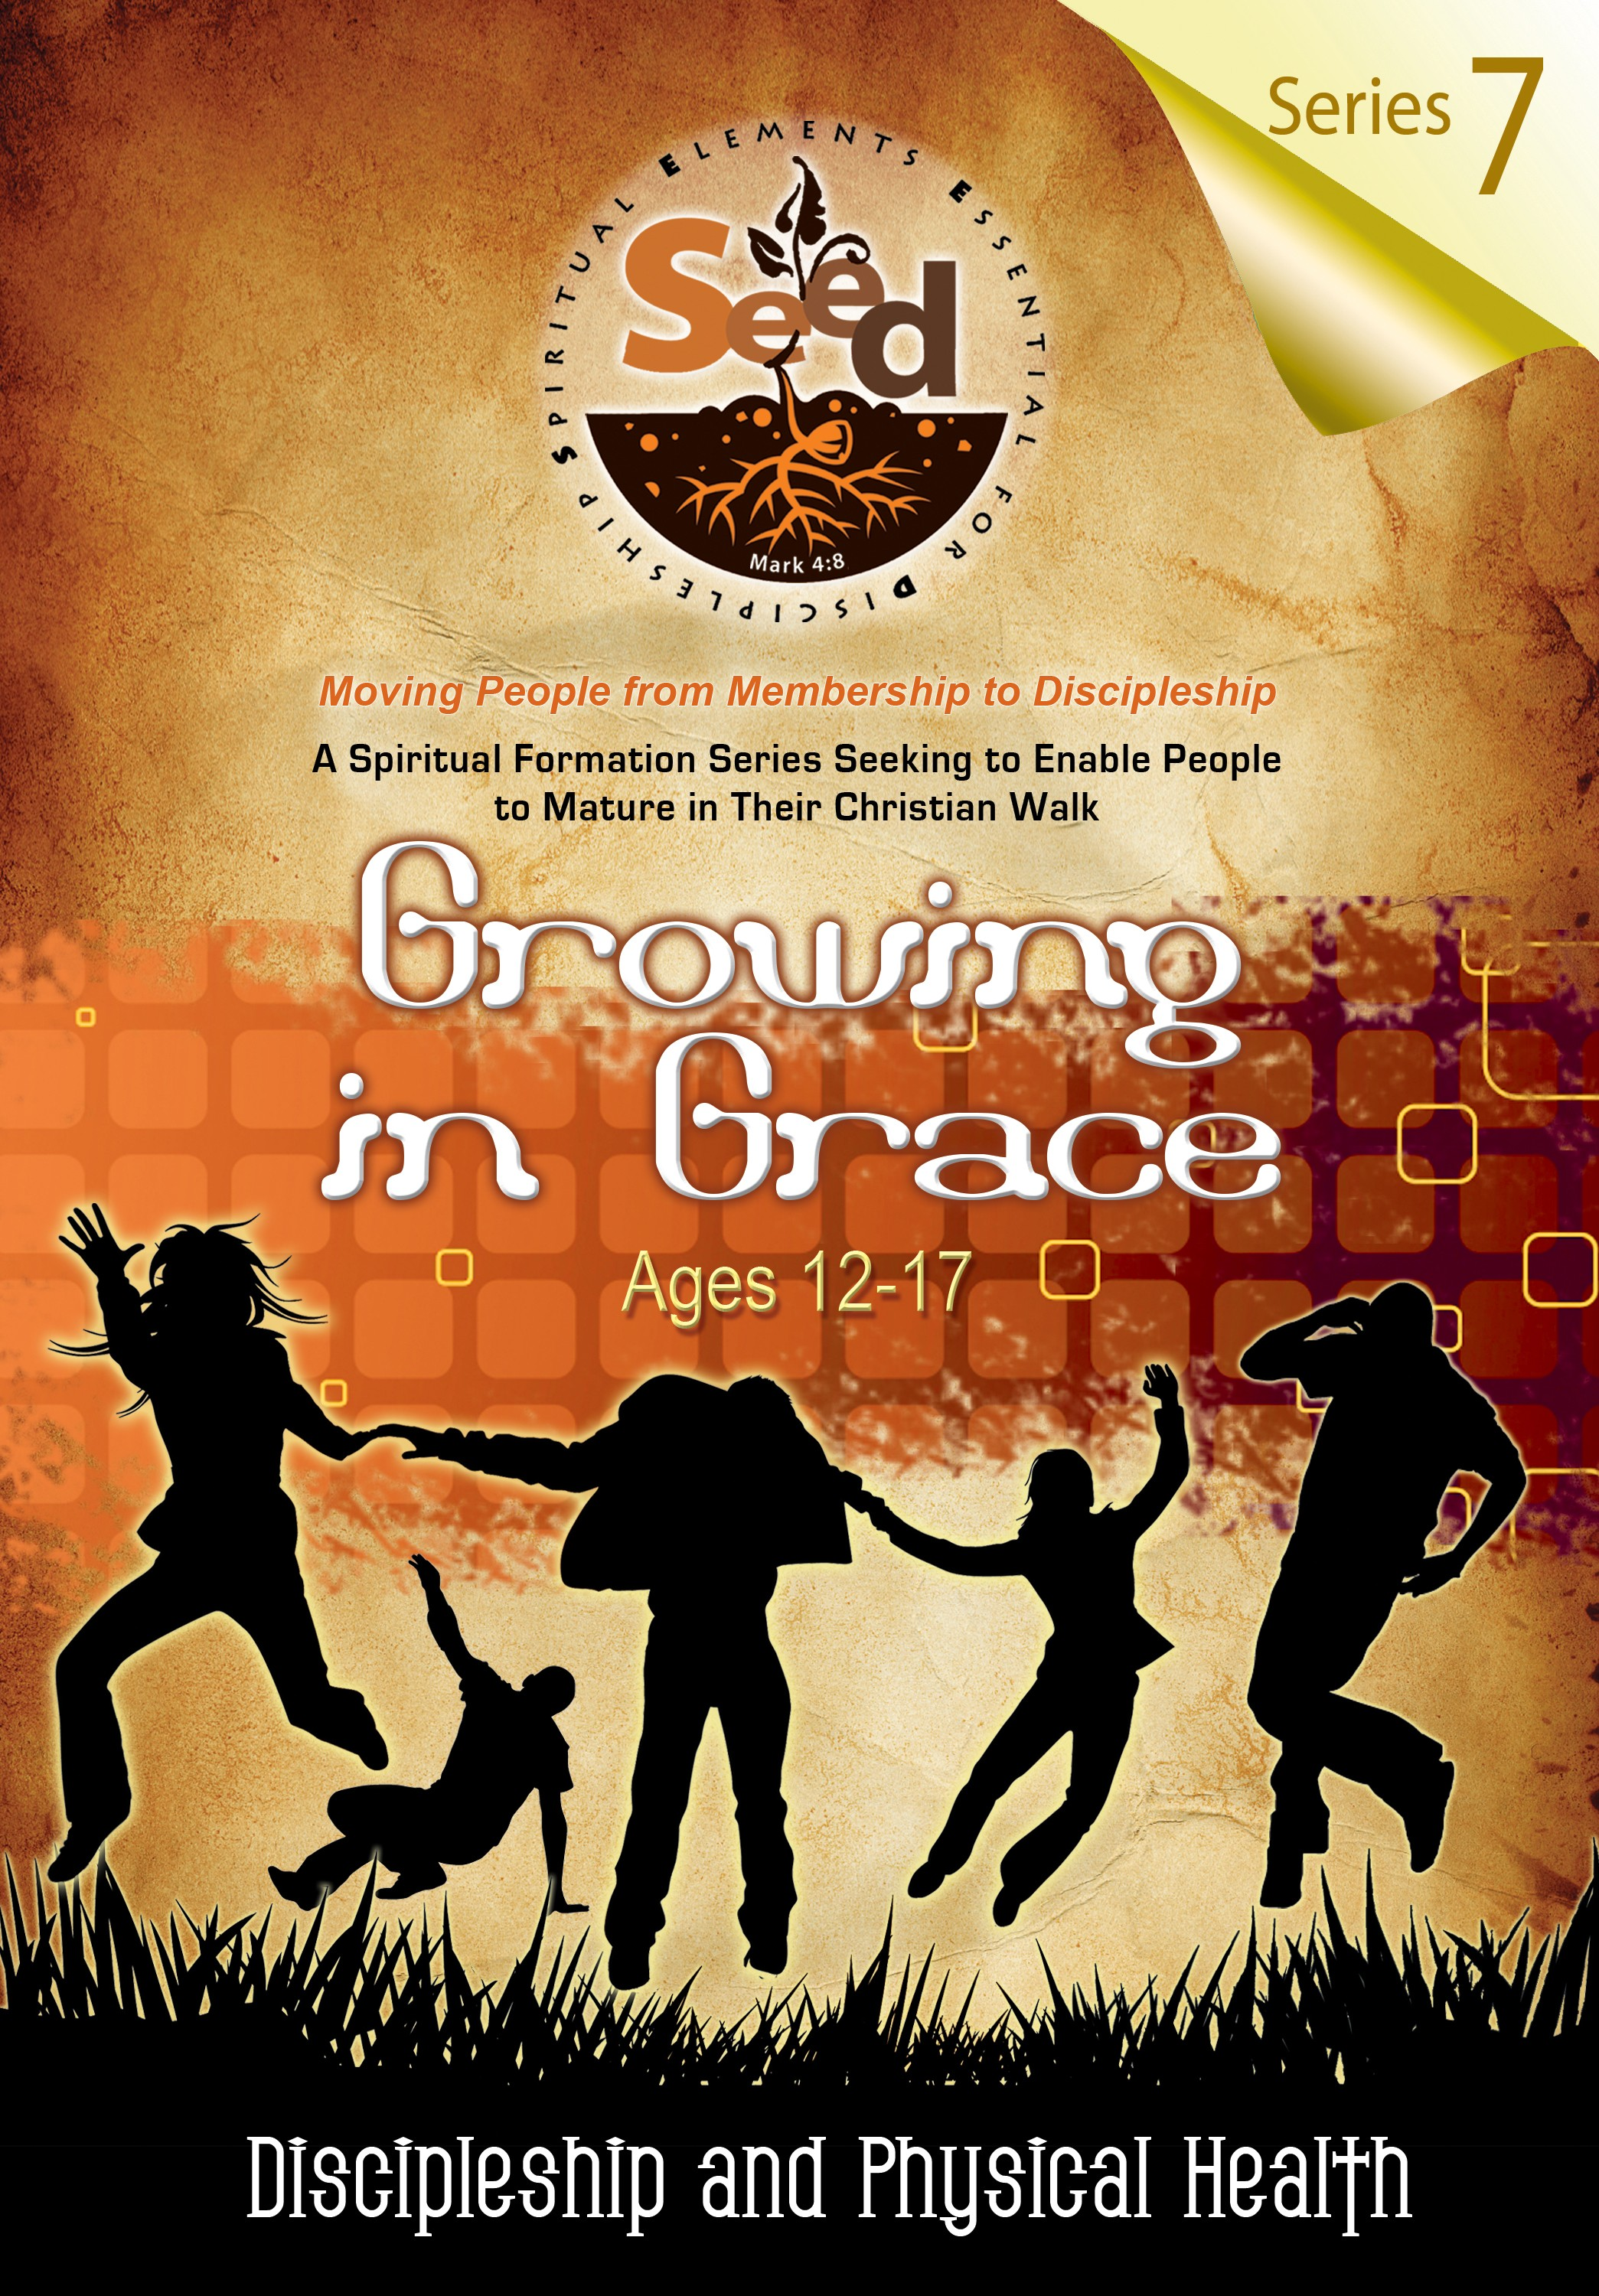 SEED Growing in Grace (Ages 12-17): Series 7: Discipleship and Physical Health